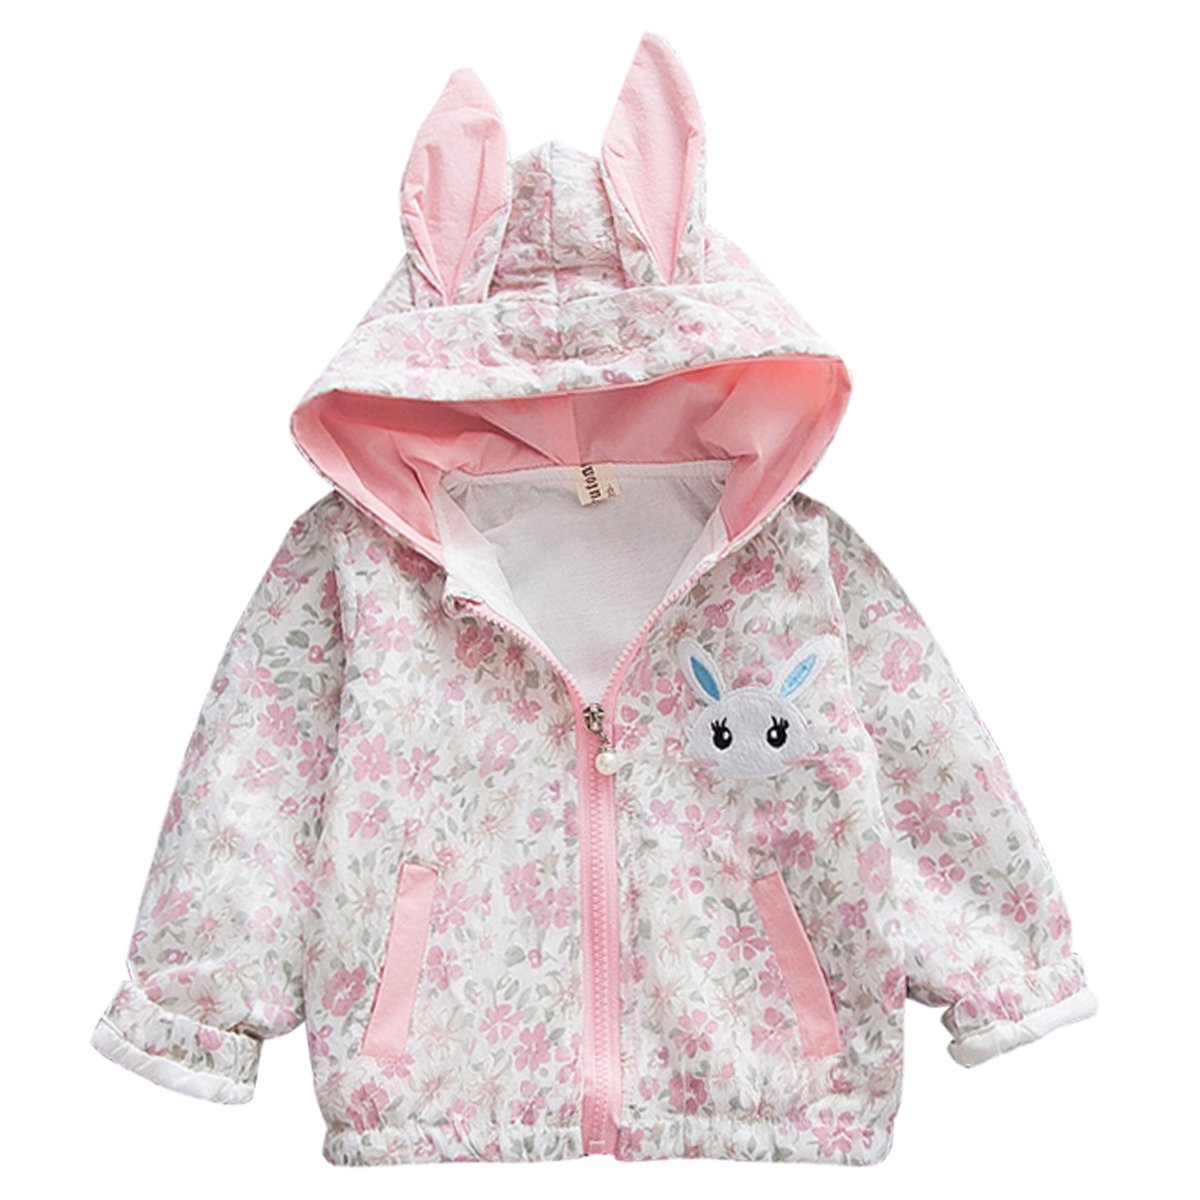 BeboneToddler Baby Girls Hooded Jacket Floral Pattern Coat Rabbit Windbreaker Outwear